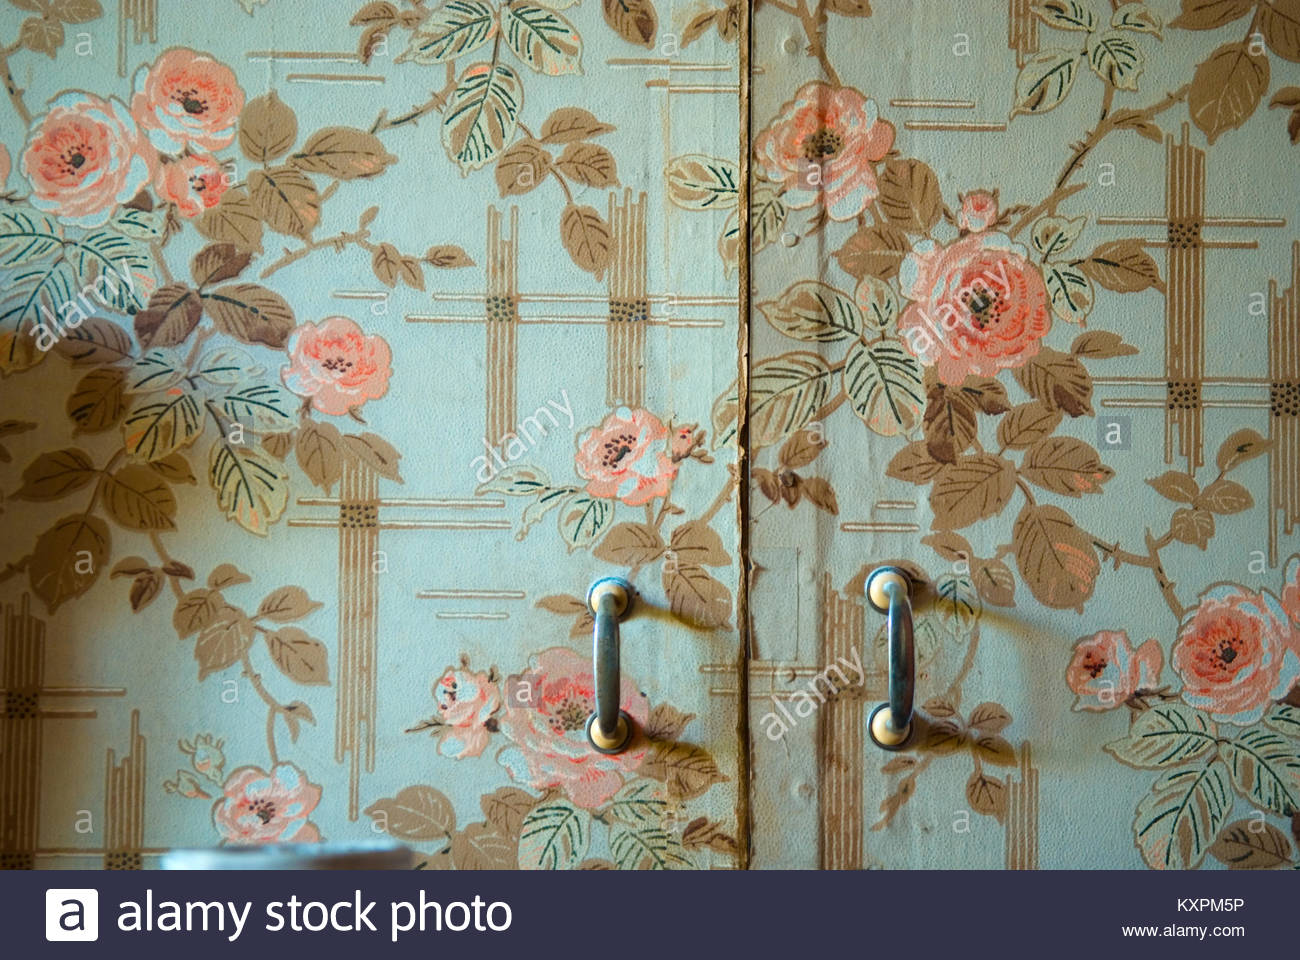 close up of wardrobe doorl with old wallpaper from 1920s in a 1300x960